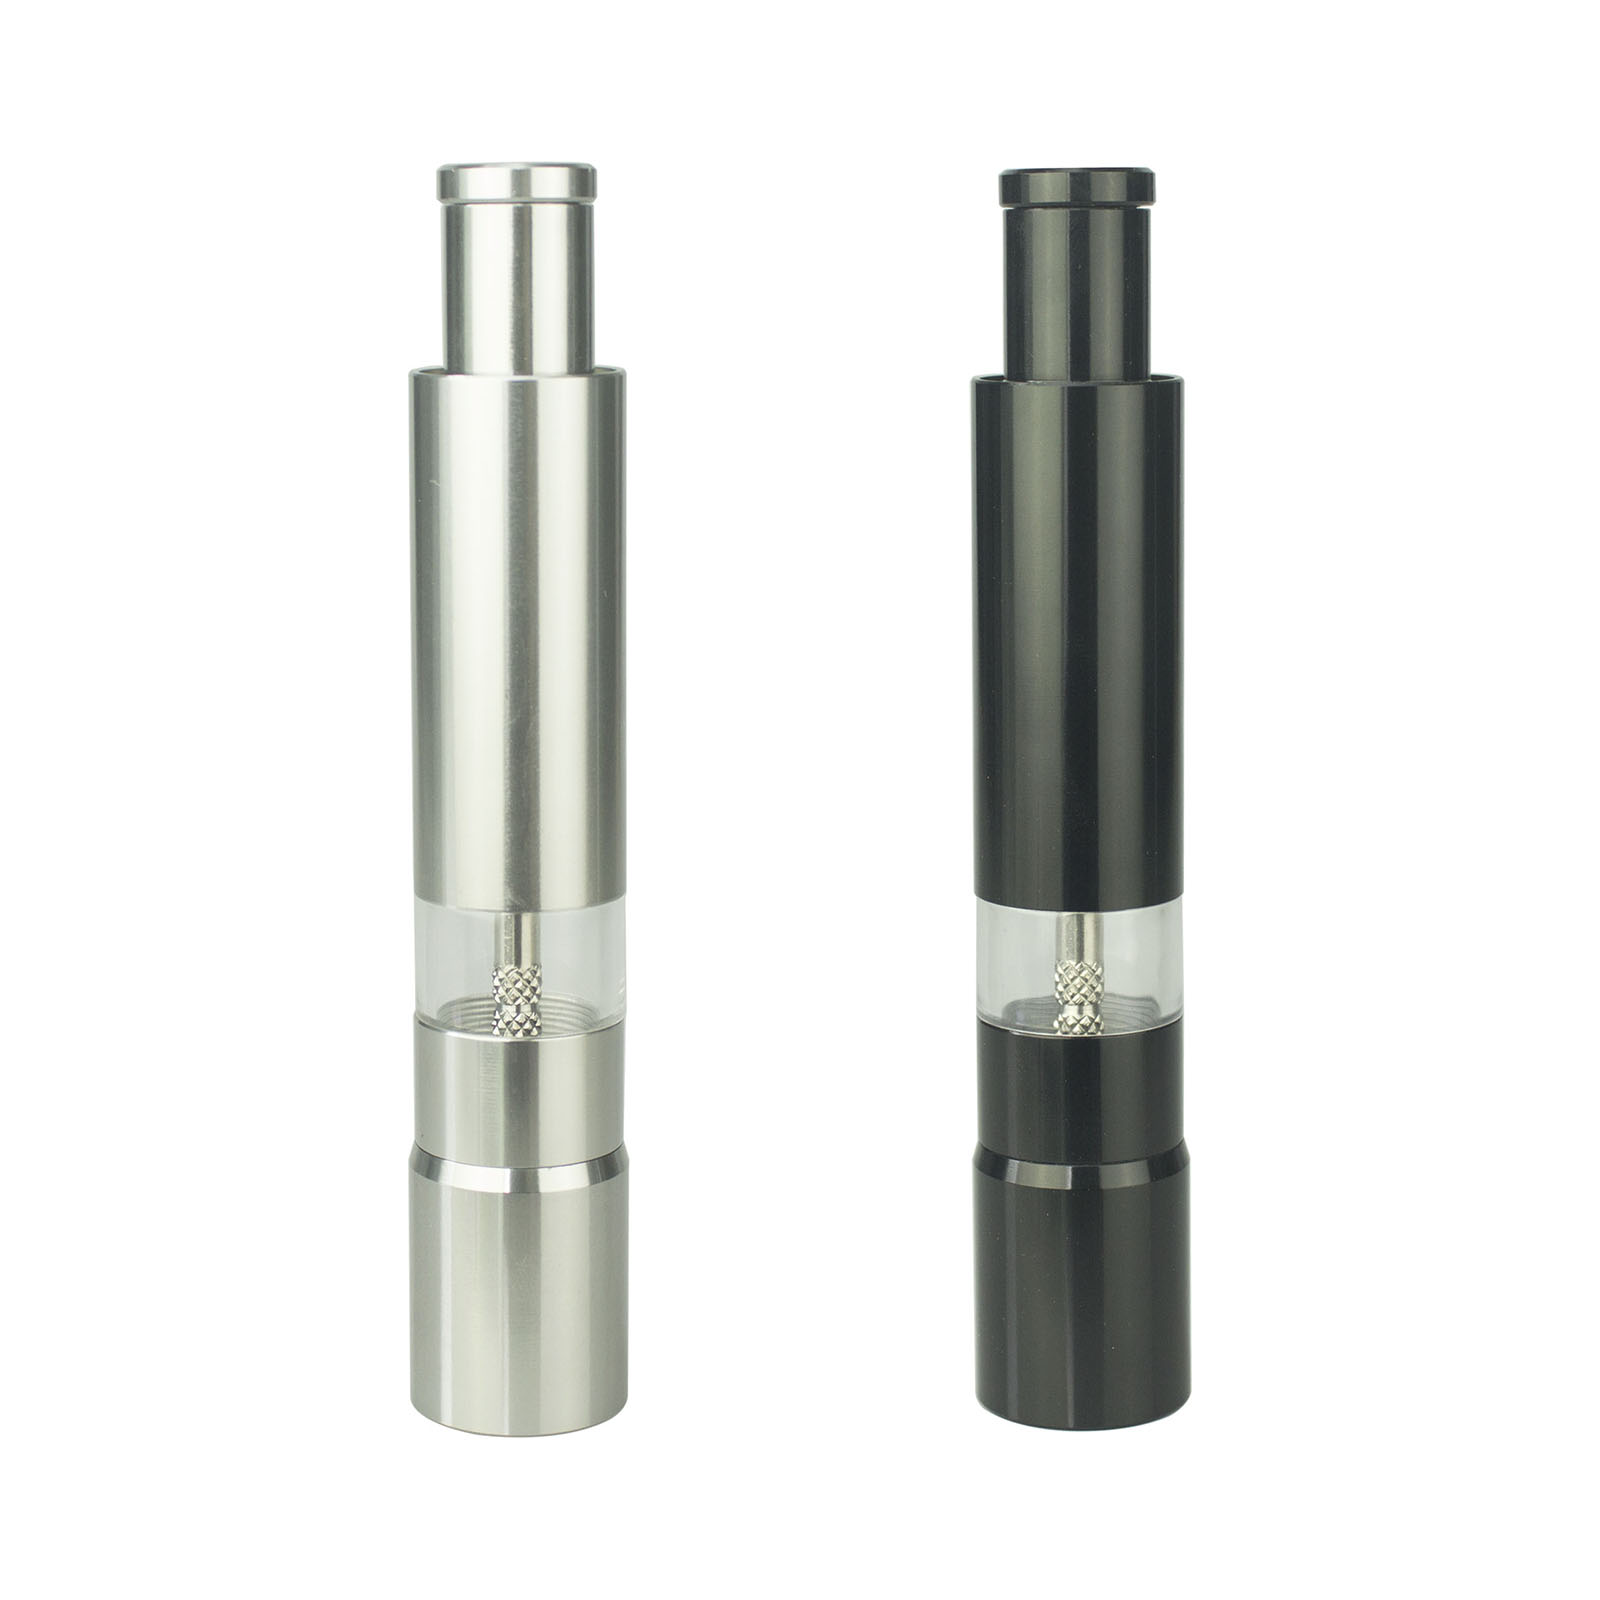 Thumb Push Pepper Mill,Customization Portable Salt Grinder,Event Logo Advertised Gift,Promotional Giveaway(China)